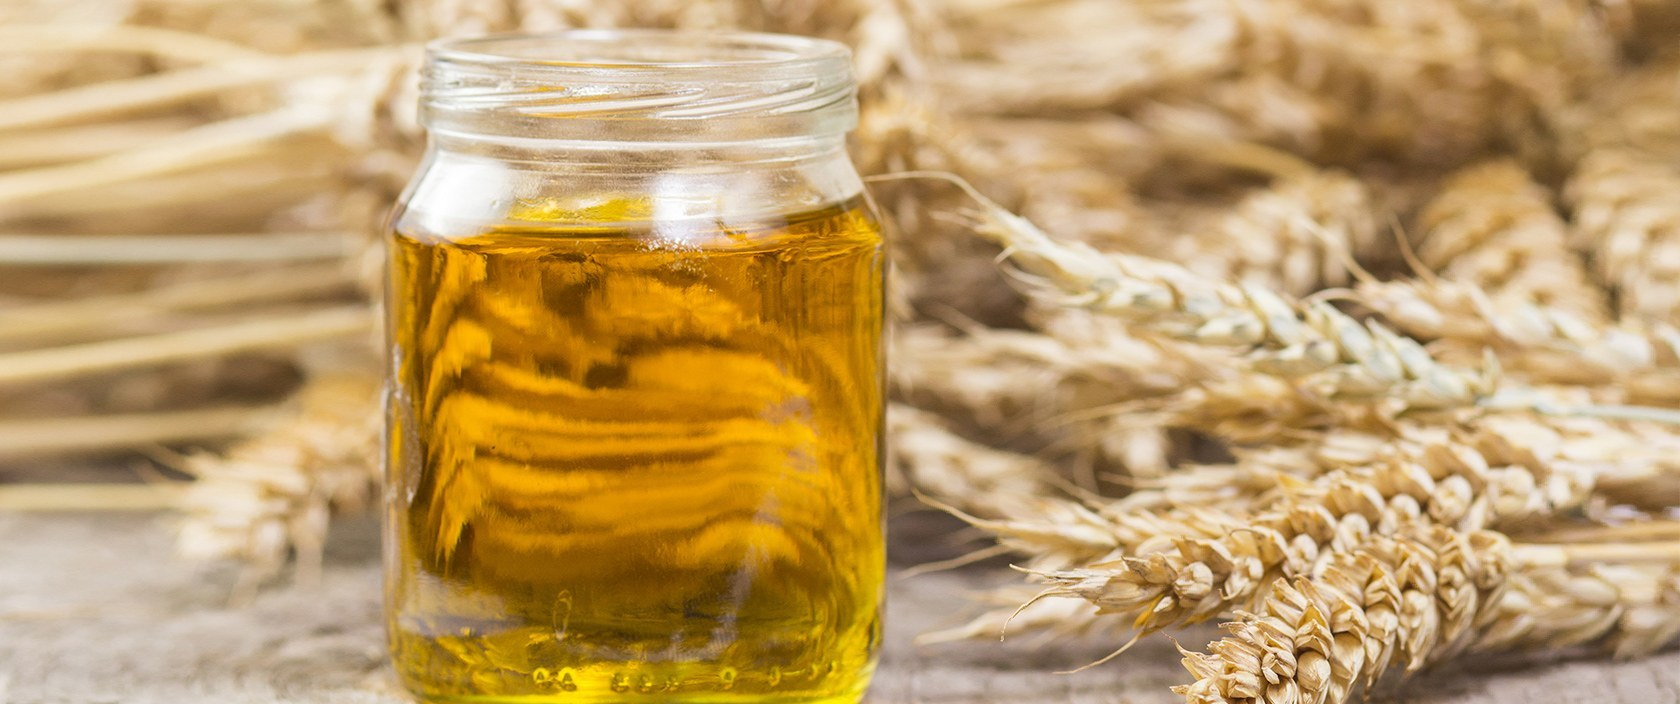 Benefits of wheat germ oil for skin